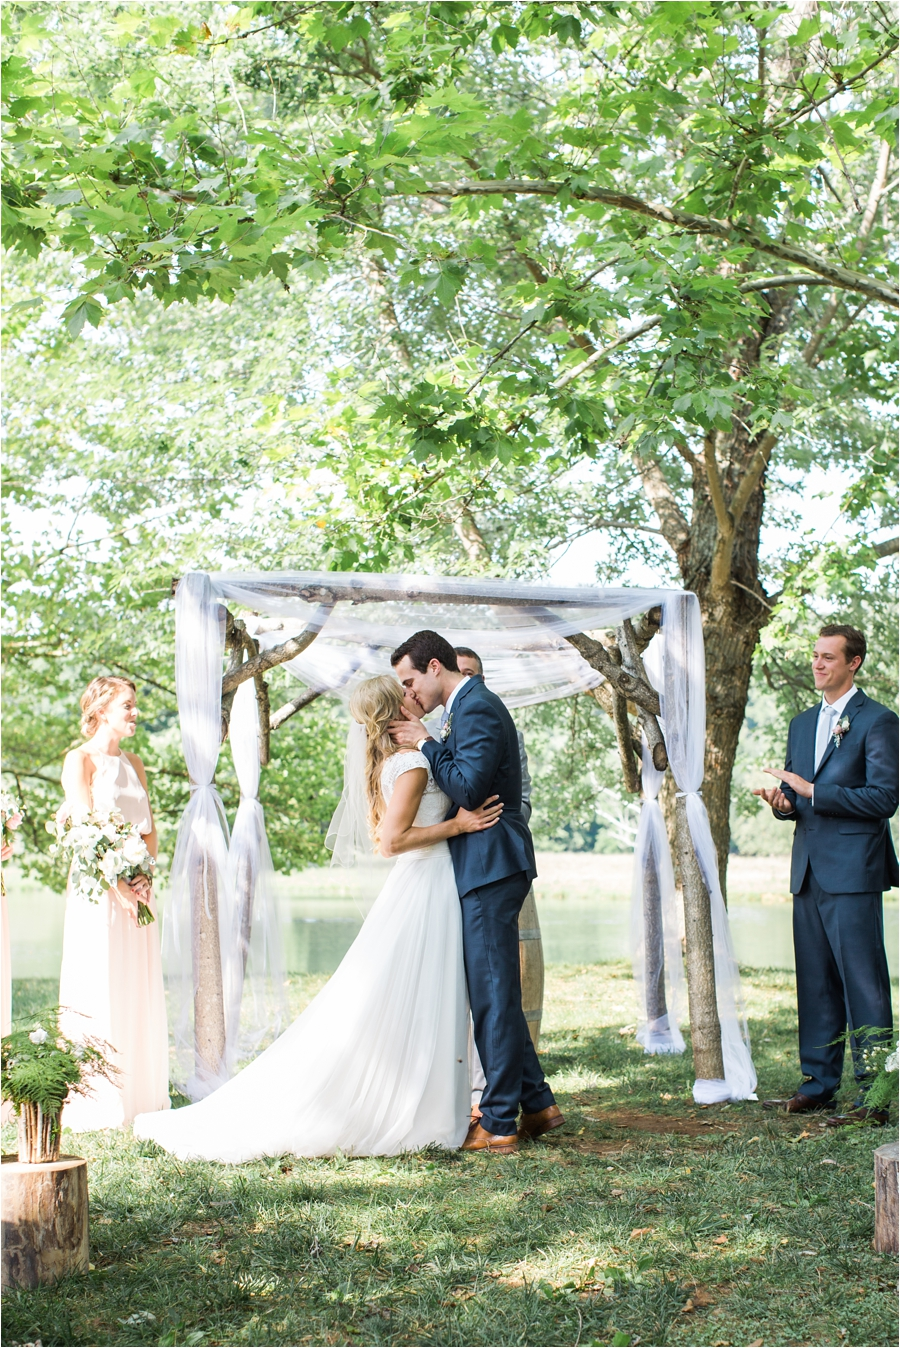 heartfelt summer wedding at big spring farm by charlottesville wedding photographer, amy nicole photography_0073